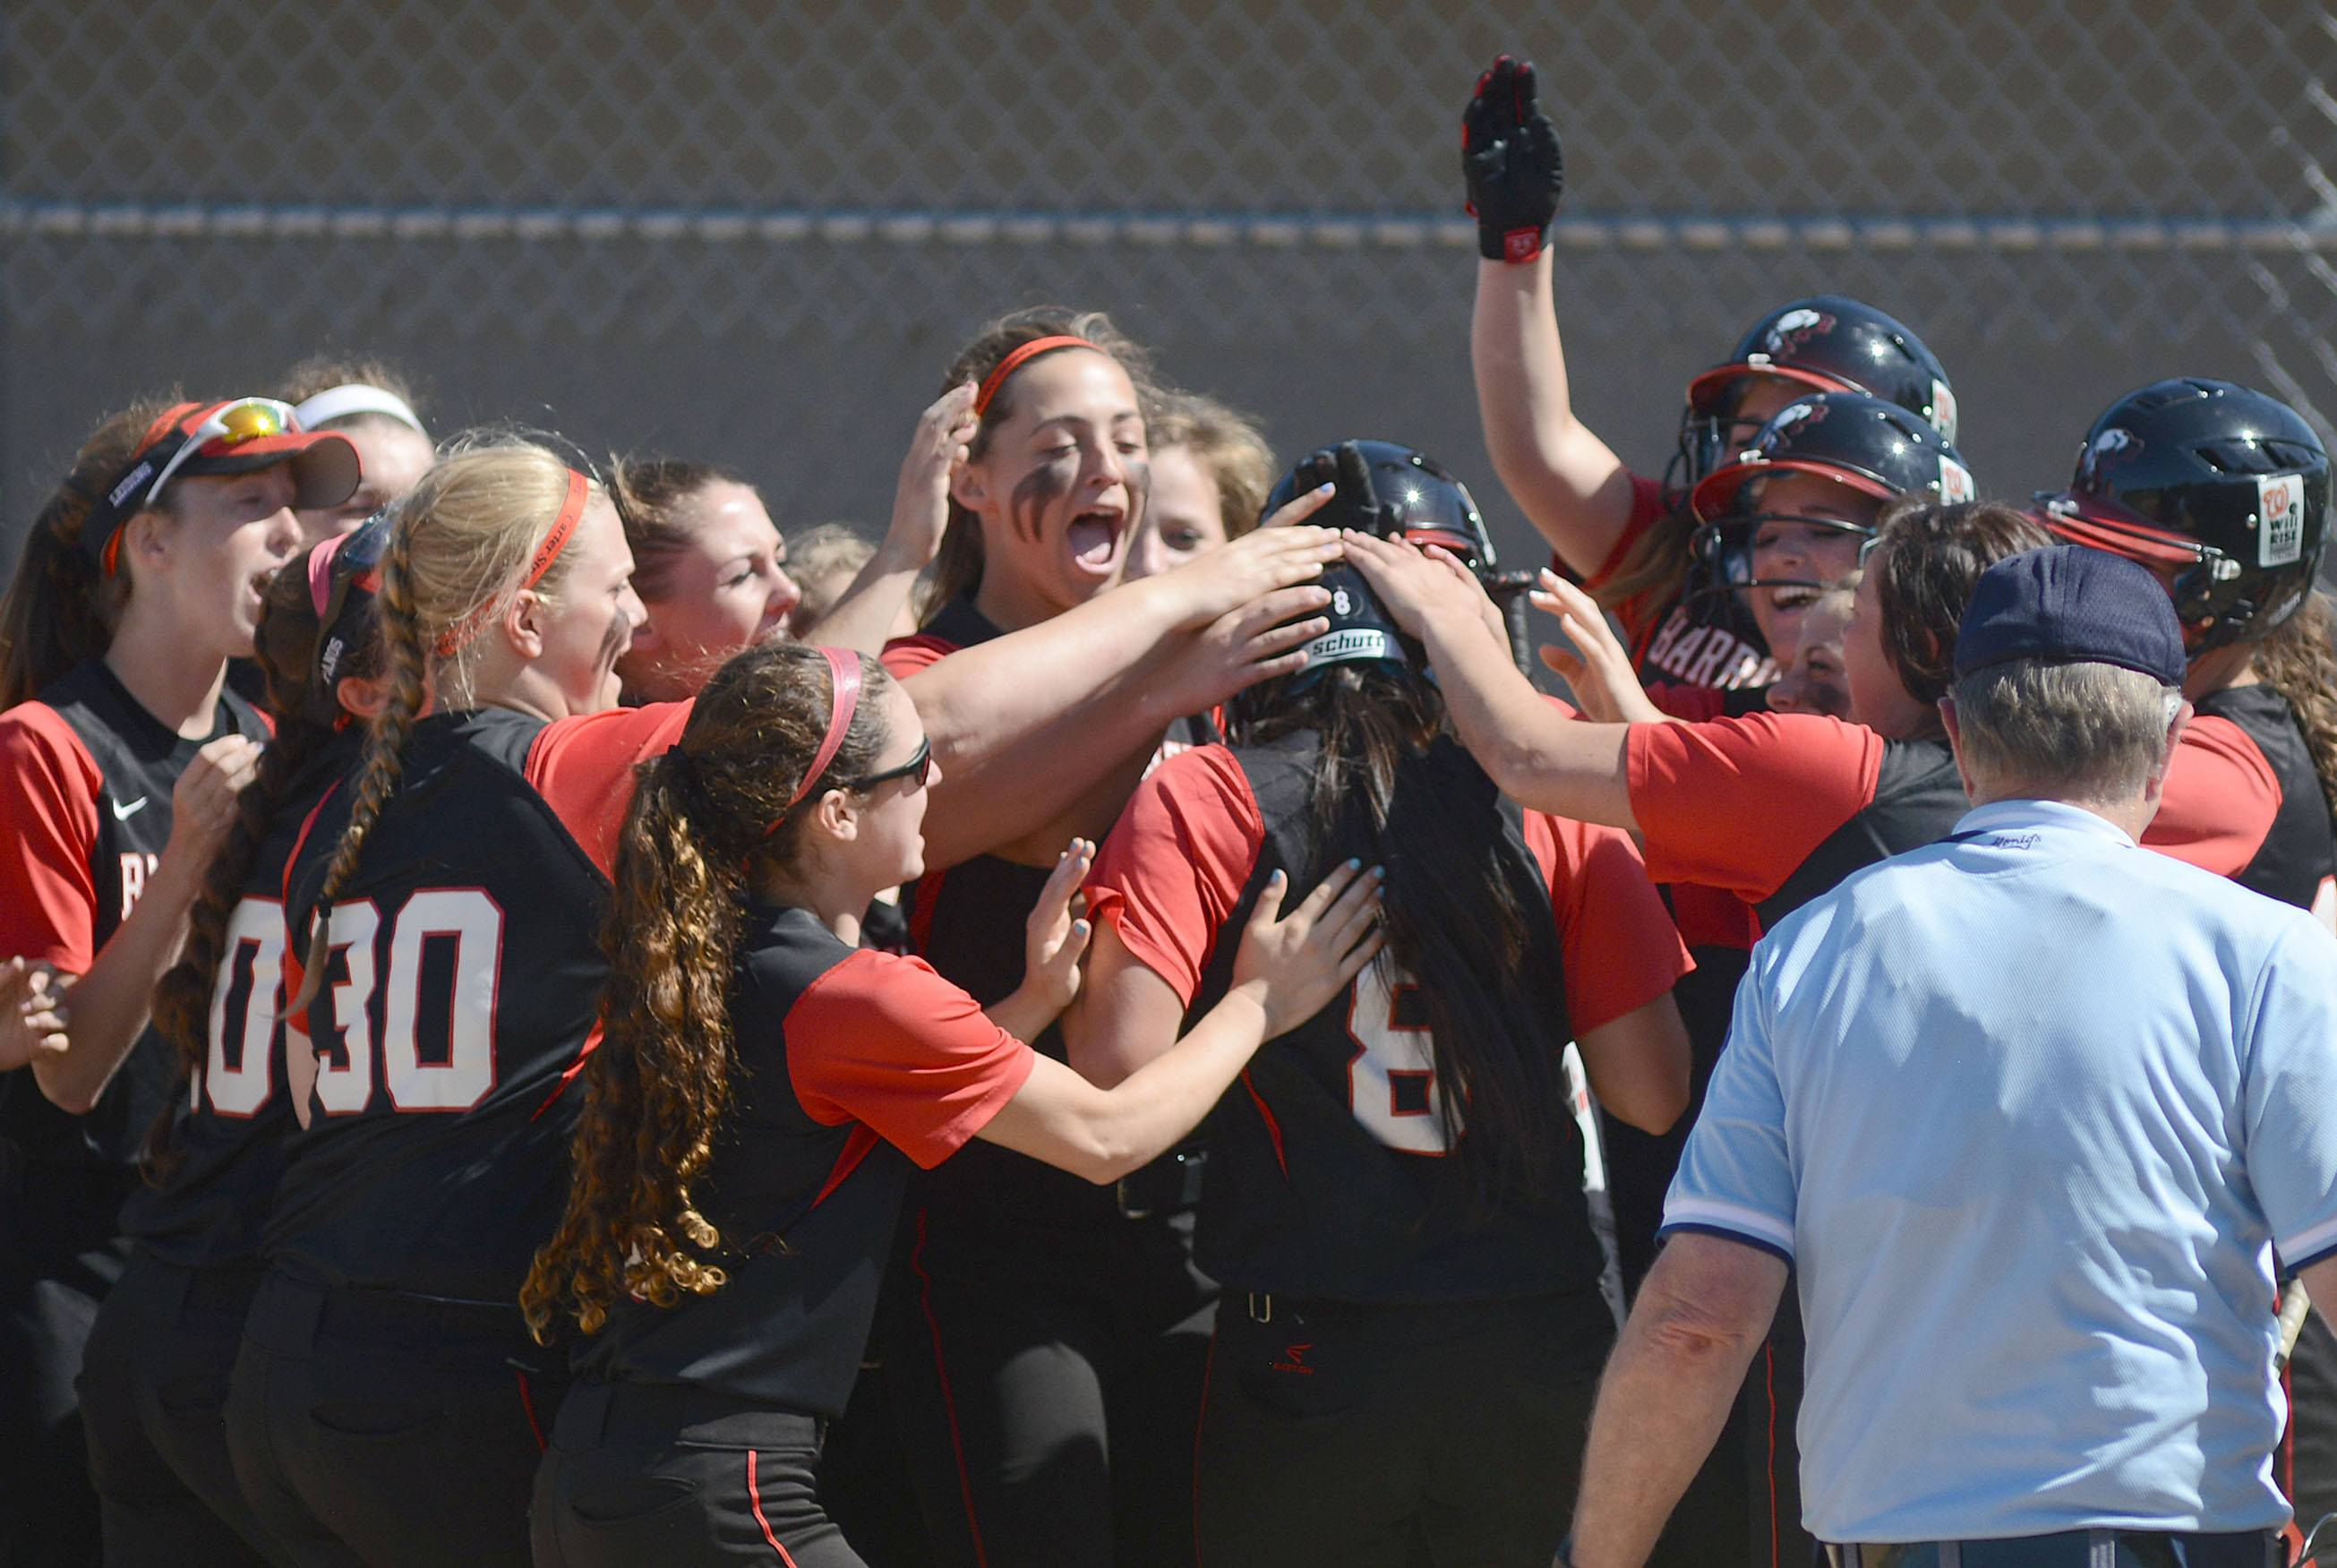 Barrington's Jennifer Inamoto (8) is swarmed by teammates at home plate after her home run in the first inning vs. Cary-Grove in the Class 4A girls softball regional championship in Cary on Friday, May 30.